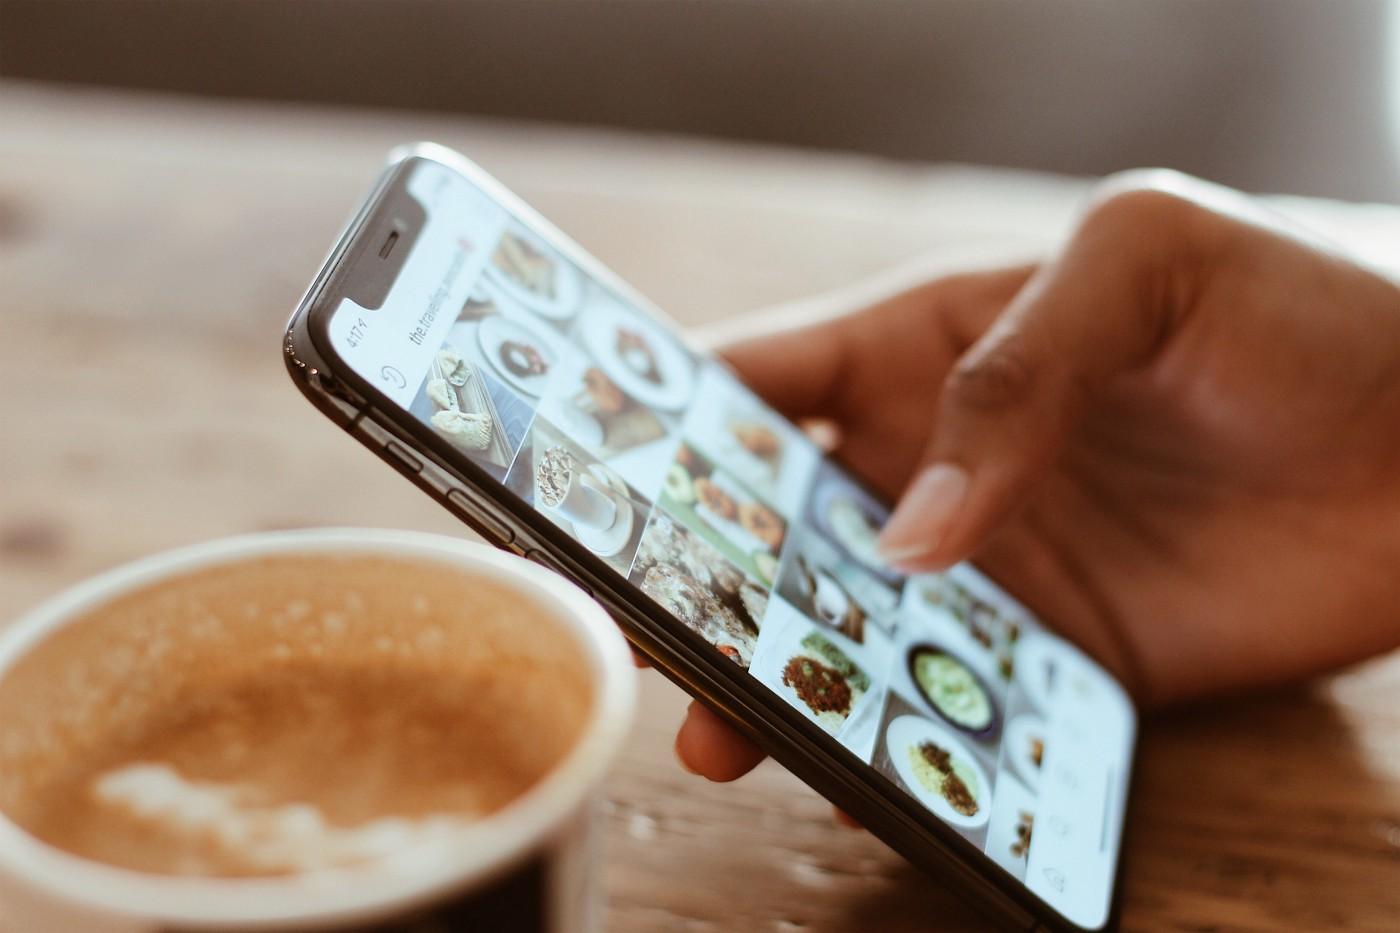 cell phone instagram and coffee